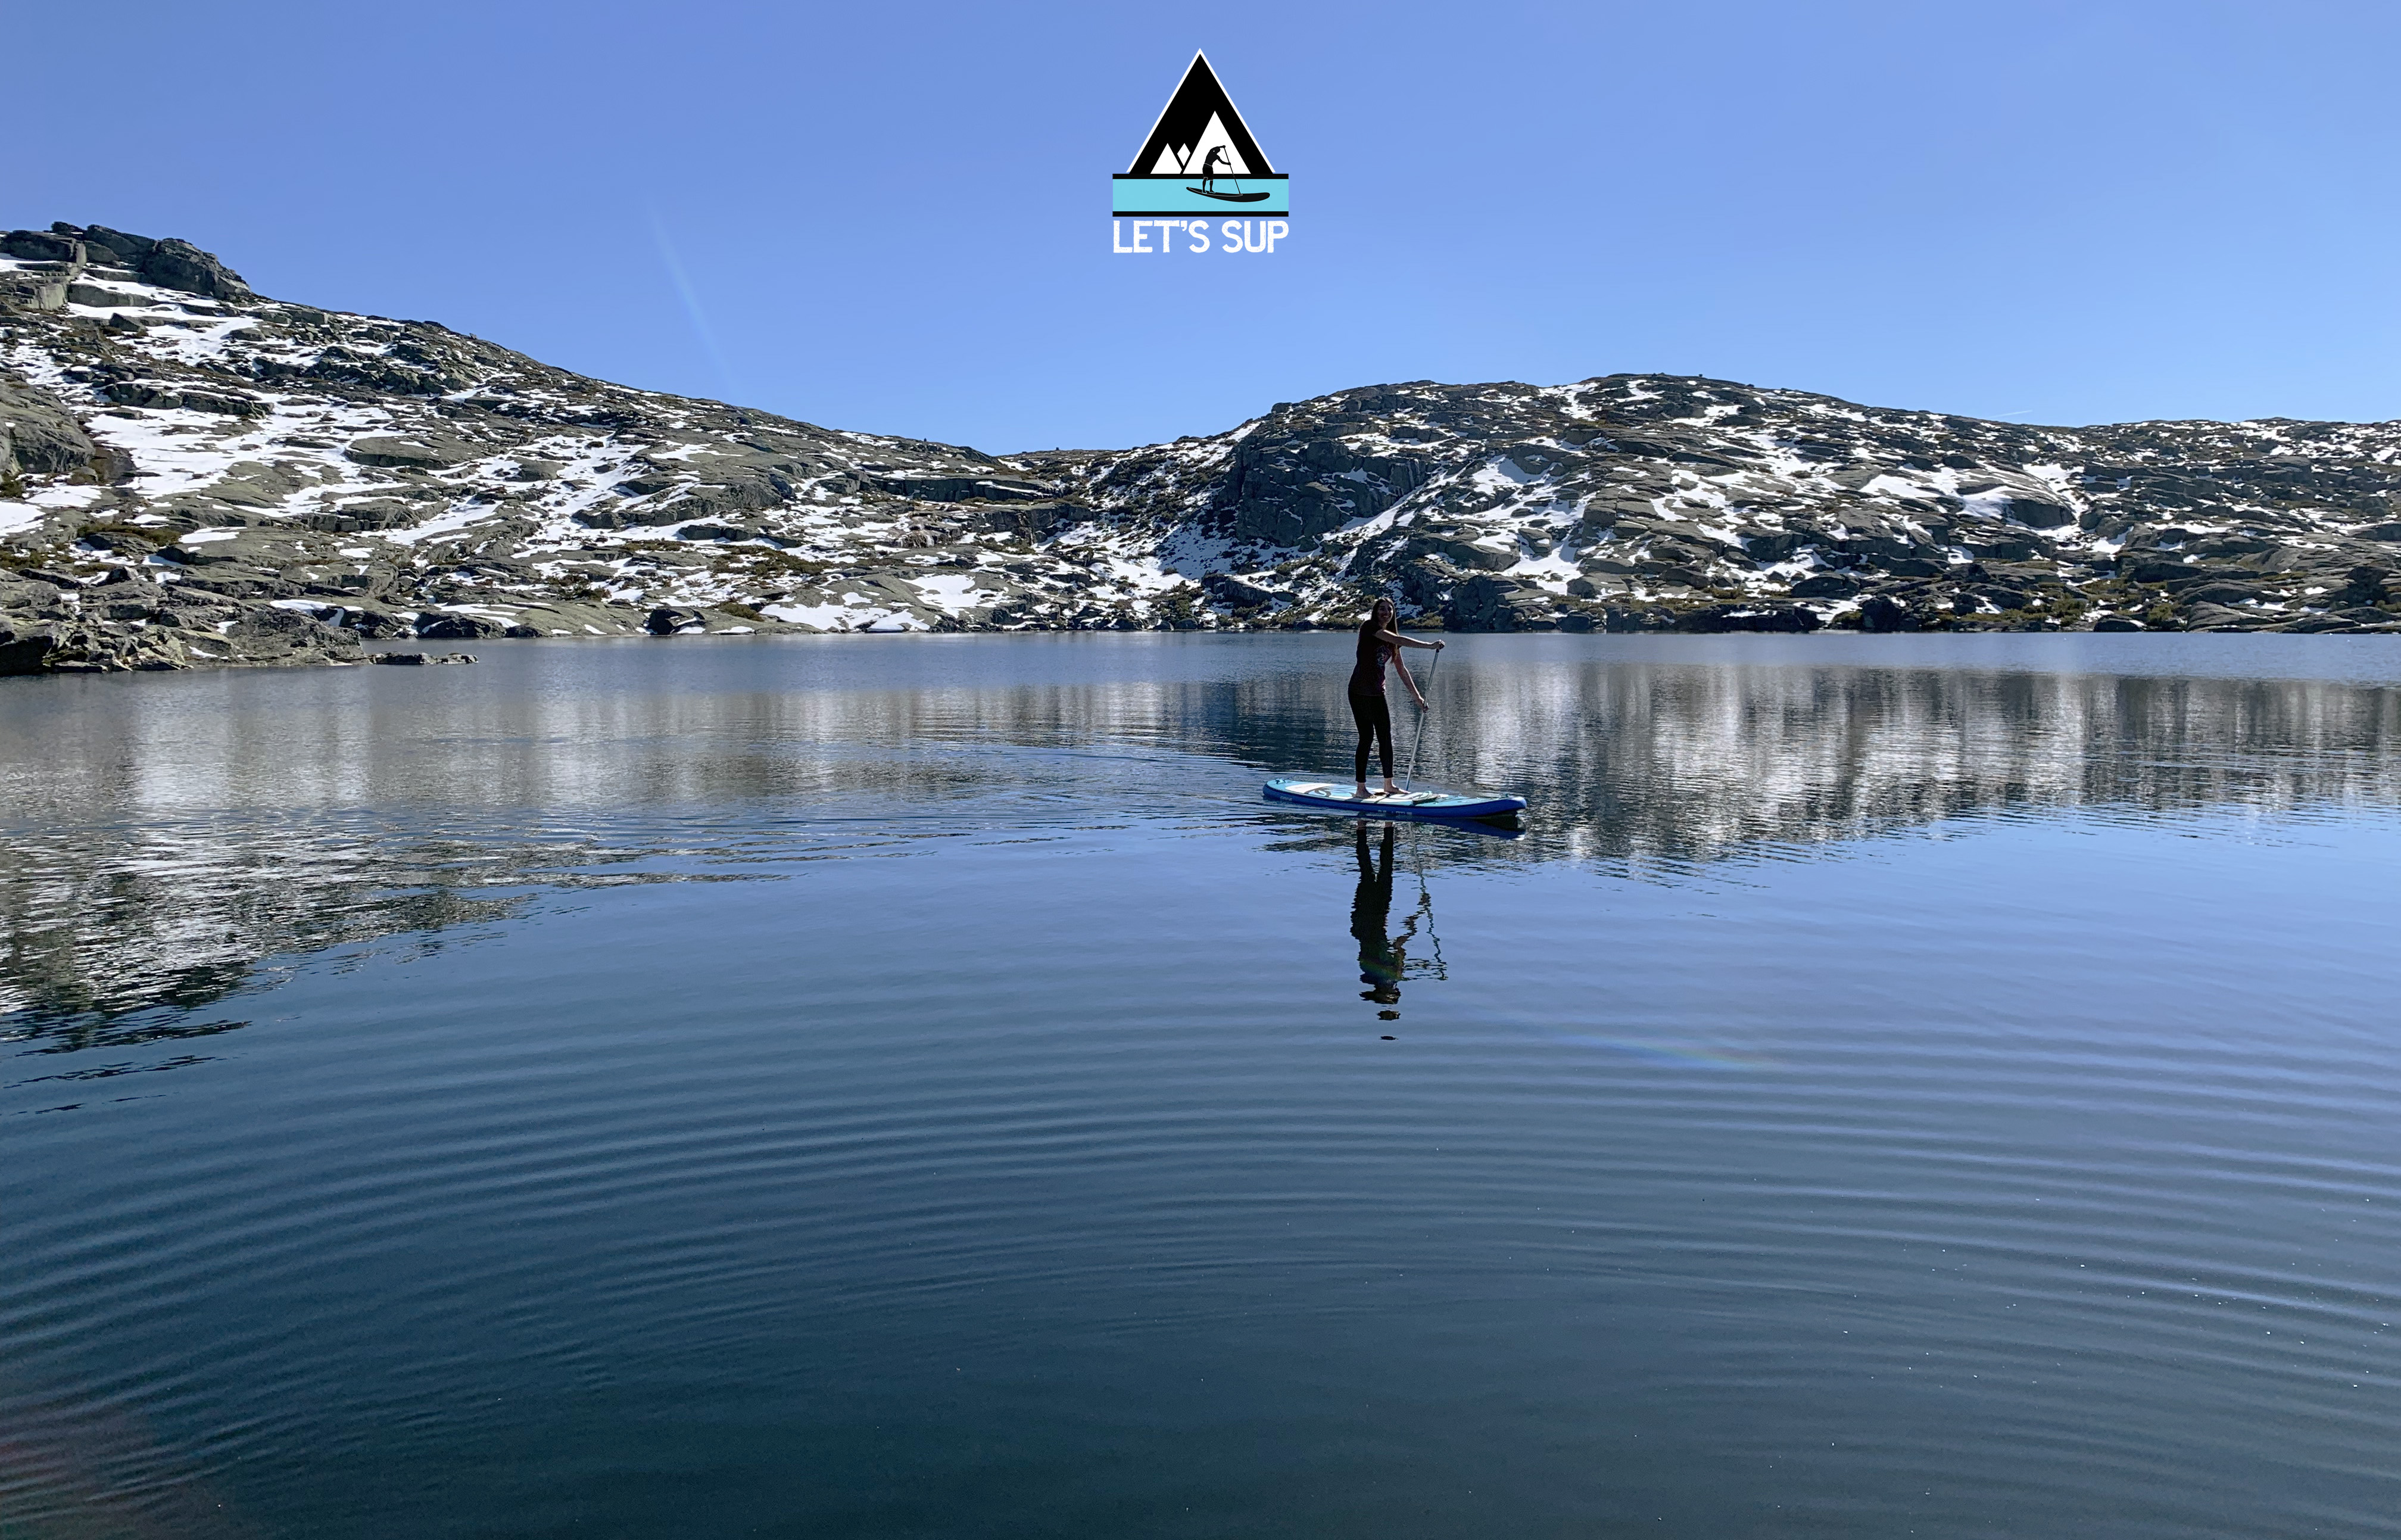 IMG_1452 - let's sup na neve